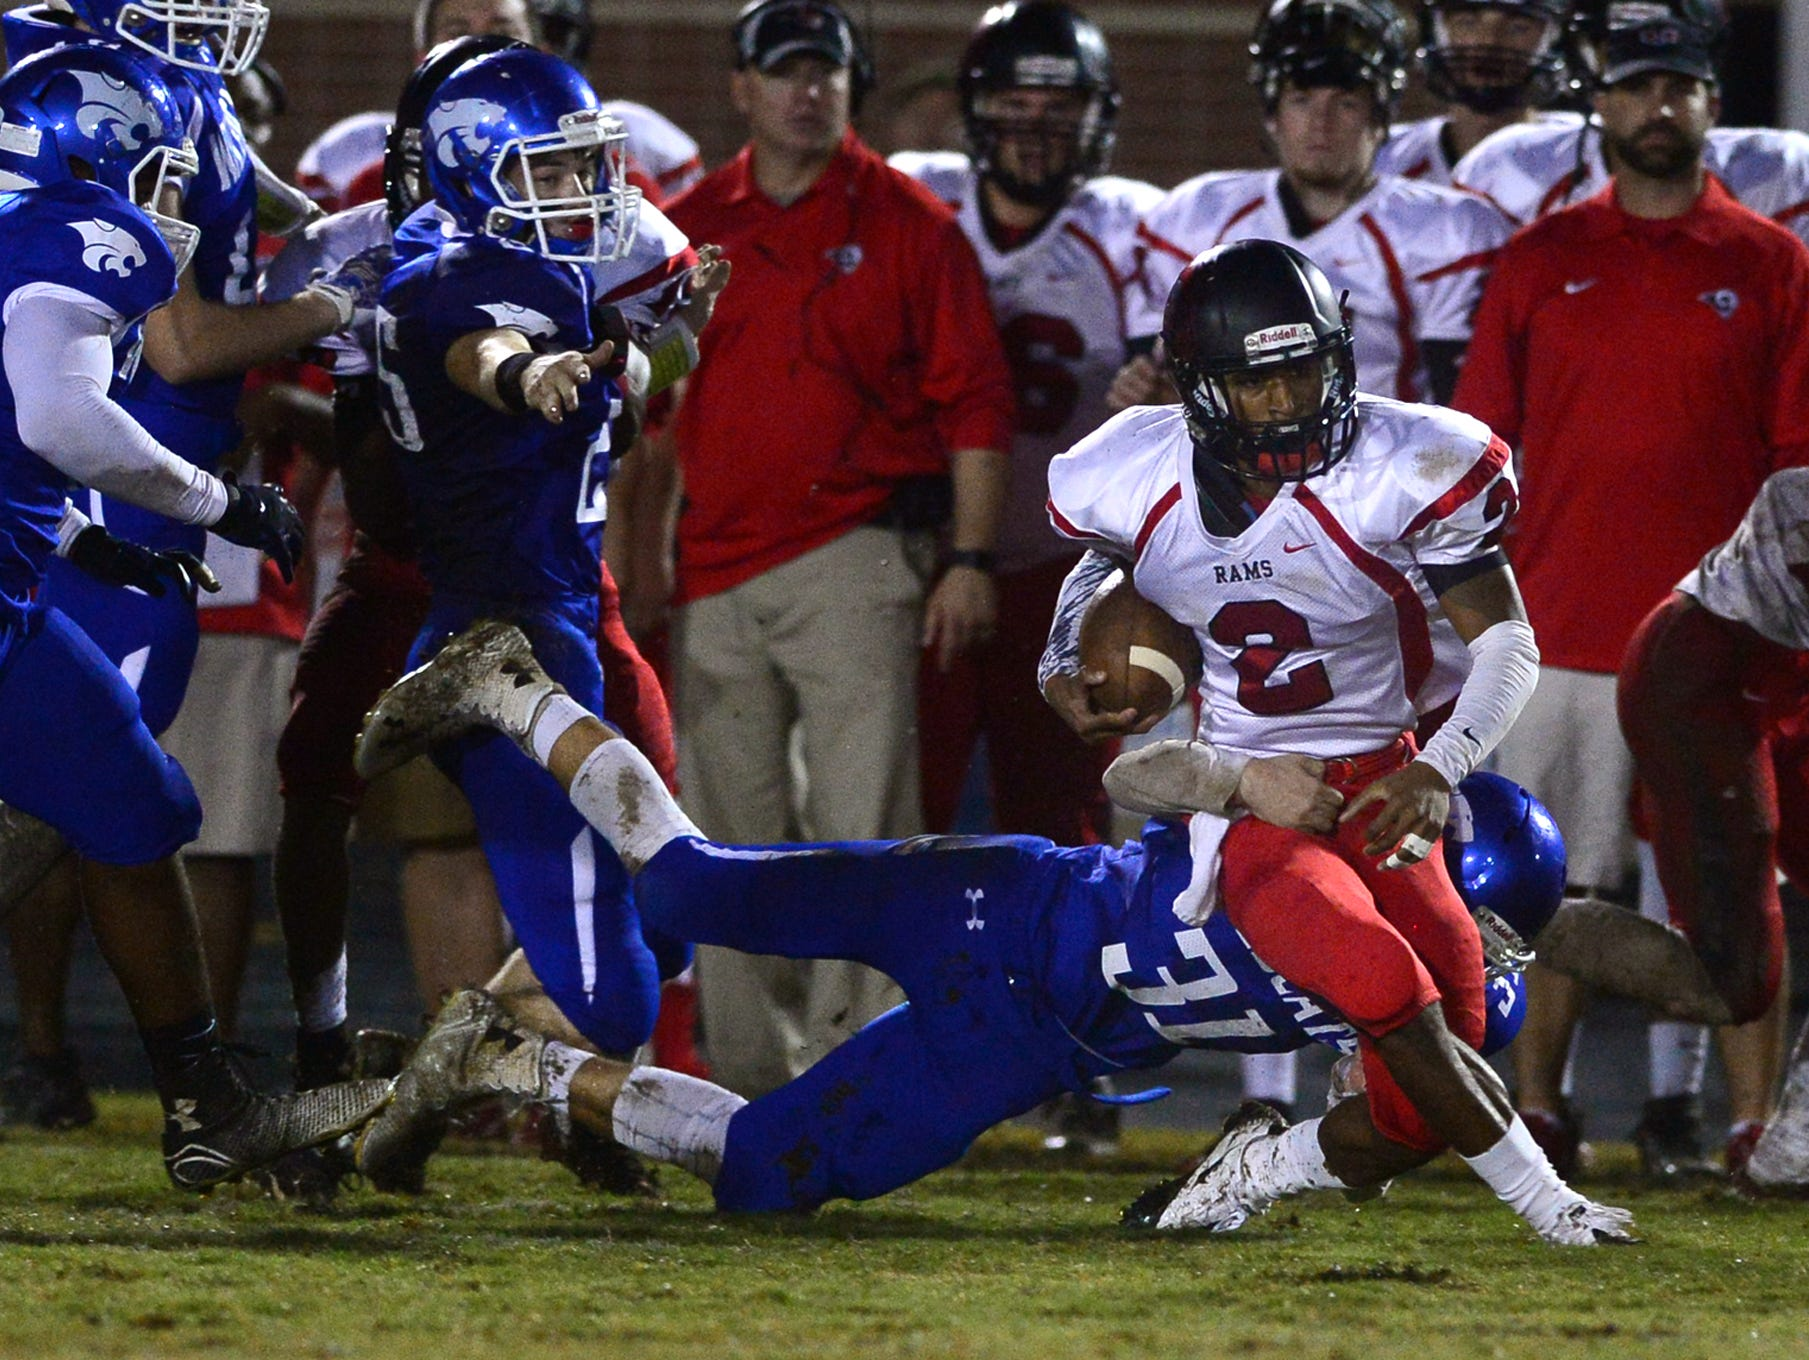 Woodmont High's Will McDougal (31) tackles Hillcrest High's Brian Spurgeon (2) at Whitt Memorial Field on Friday.